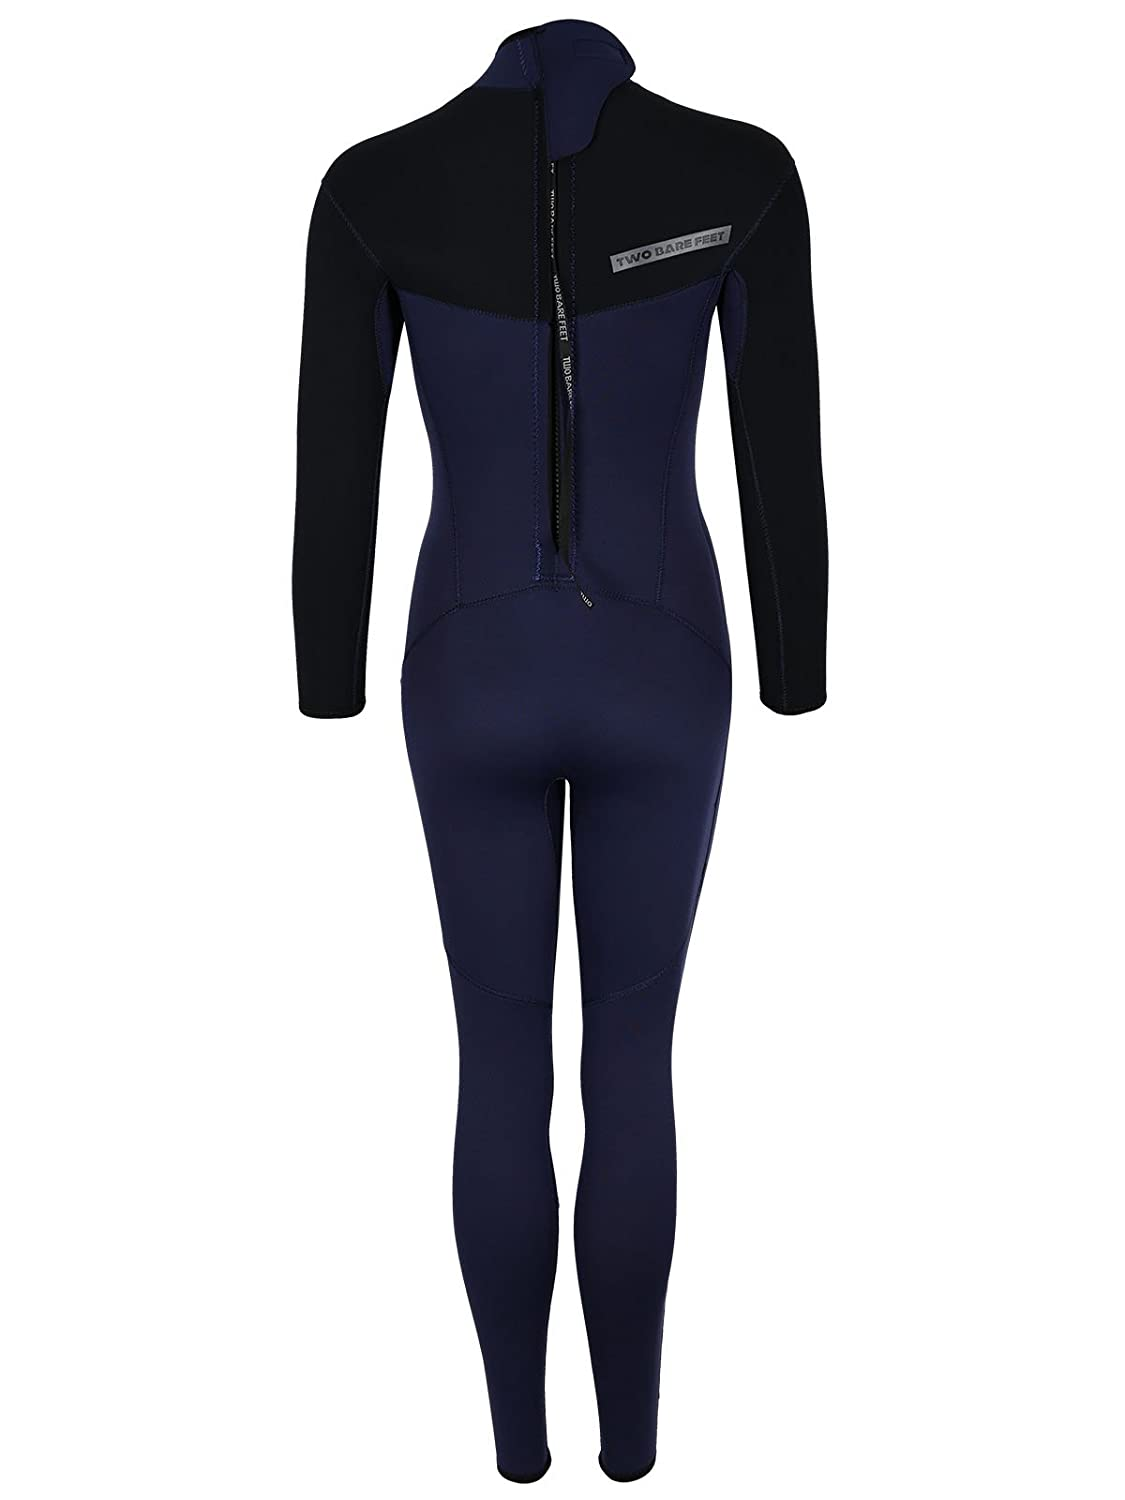 16cf68d424c7 MD THUNDERCLAP Womens 5/4mm Winter Wetsuit by Two Bare Feet Thick Warm:  Amazon.co.uk: Sports & Outdoors